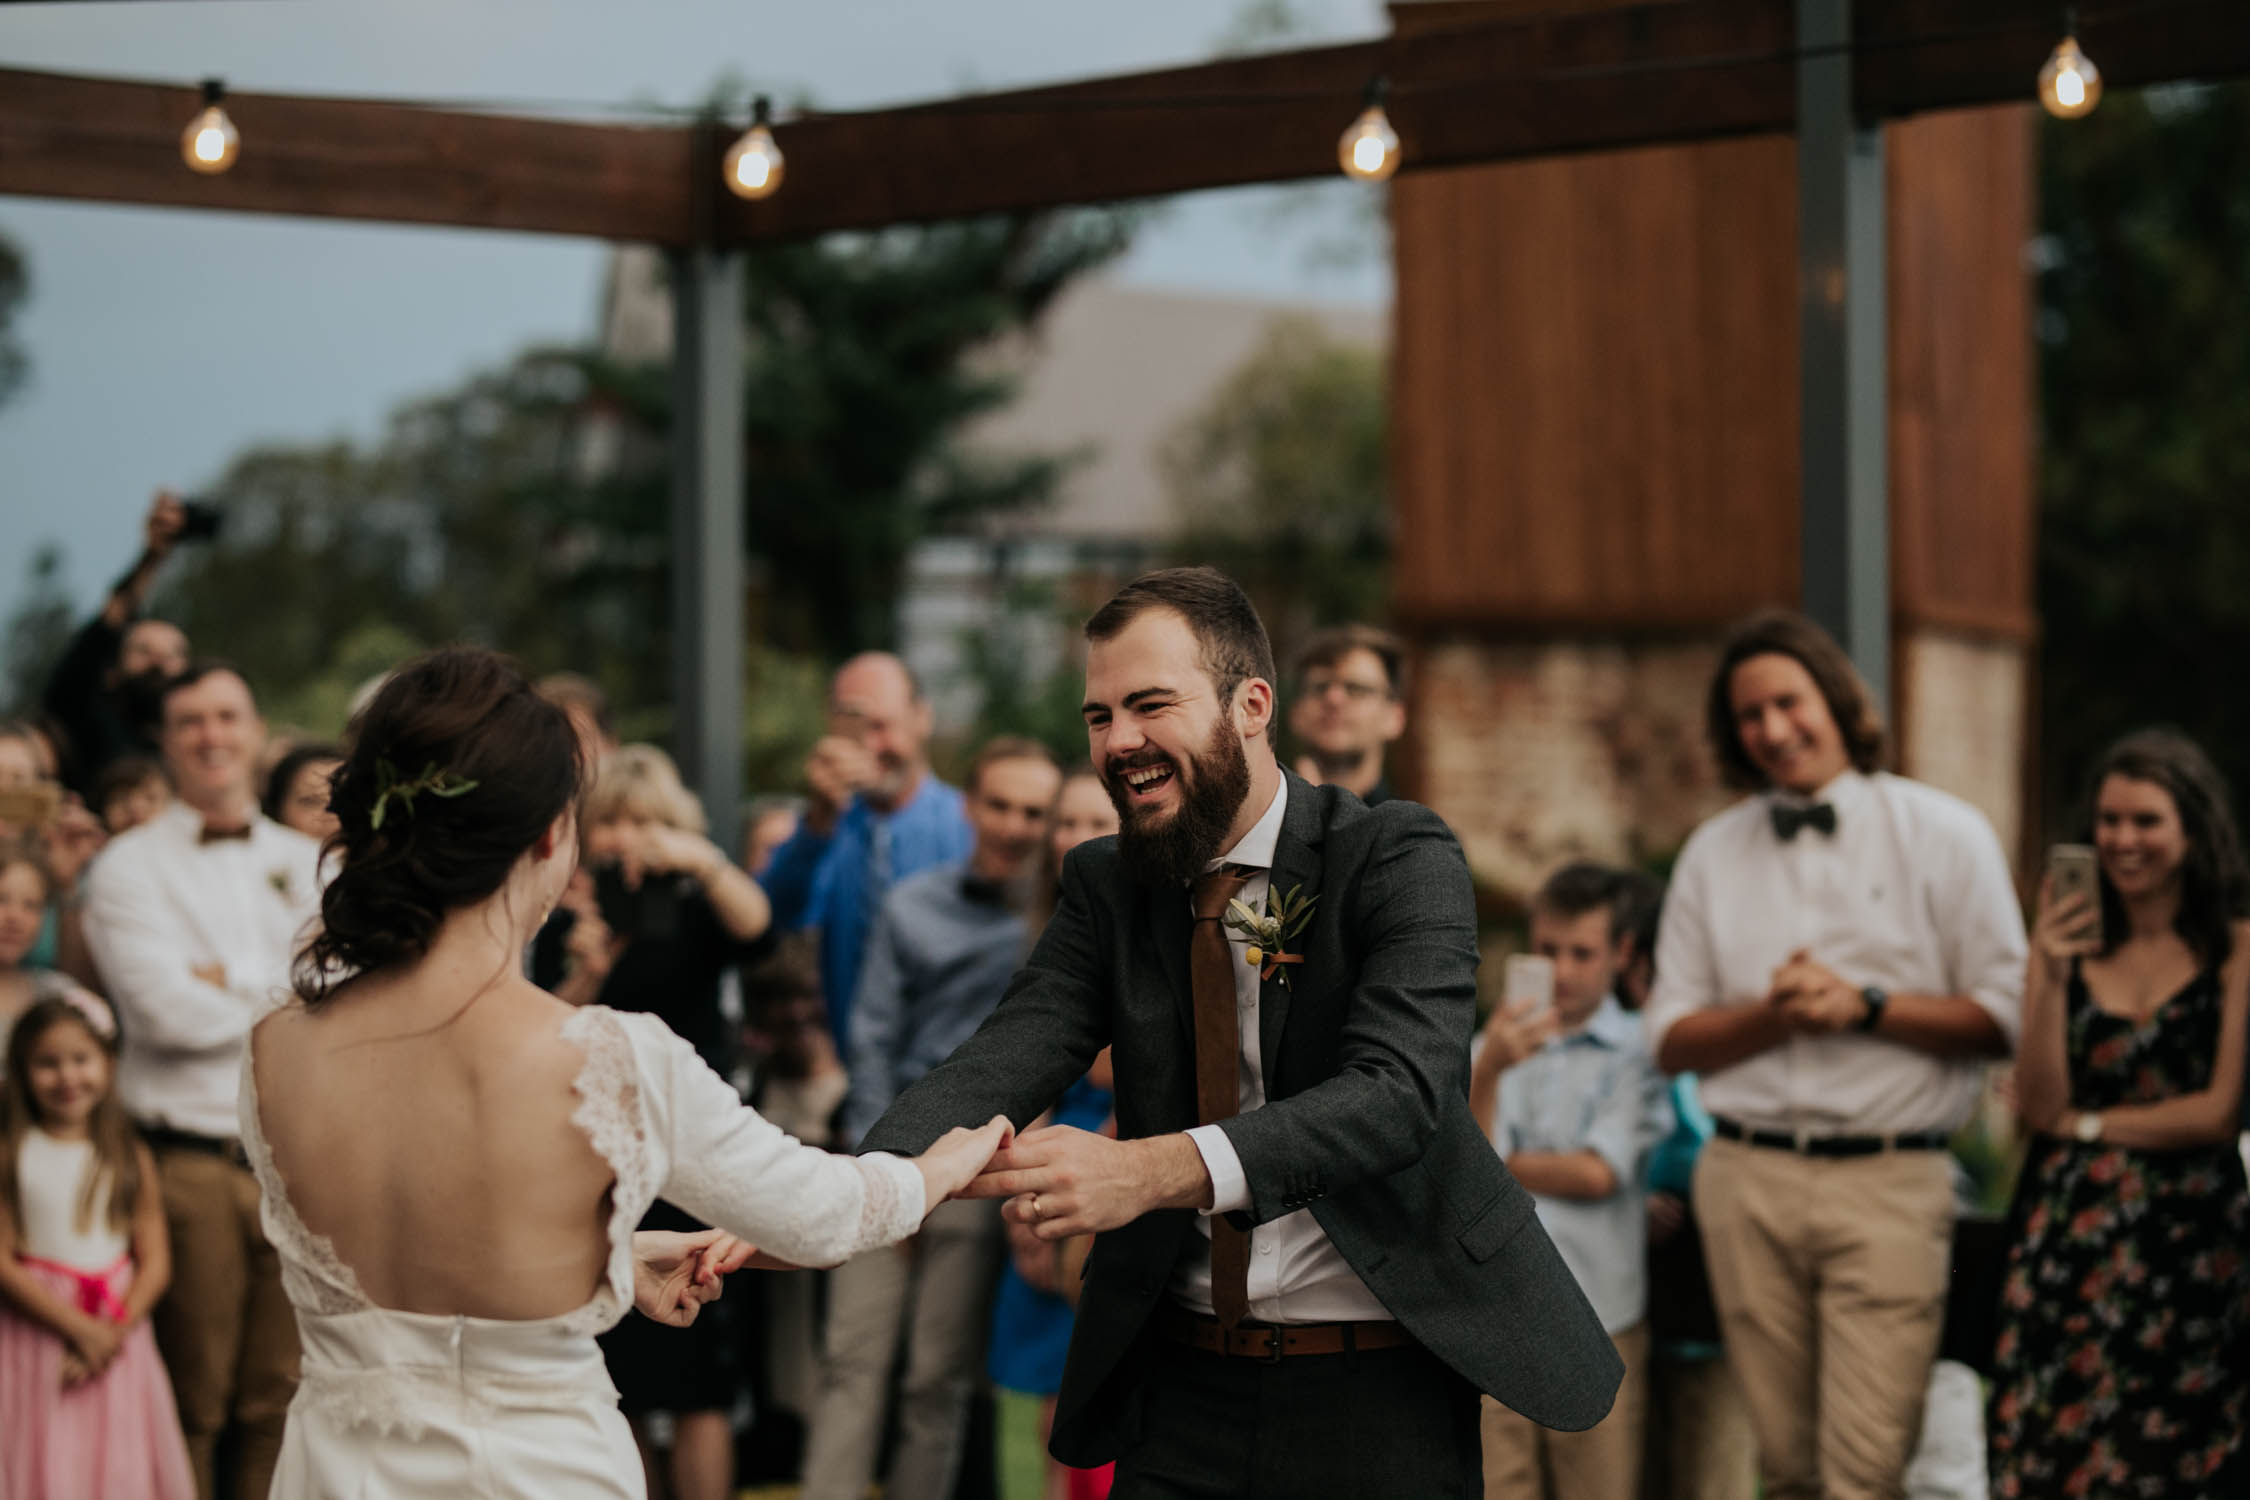 Candid moment of bride and groom's first dance under stars surrounded by wedding guests under Edison light bulbs to live hipster band